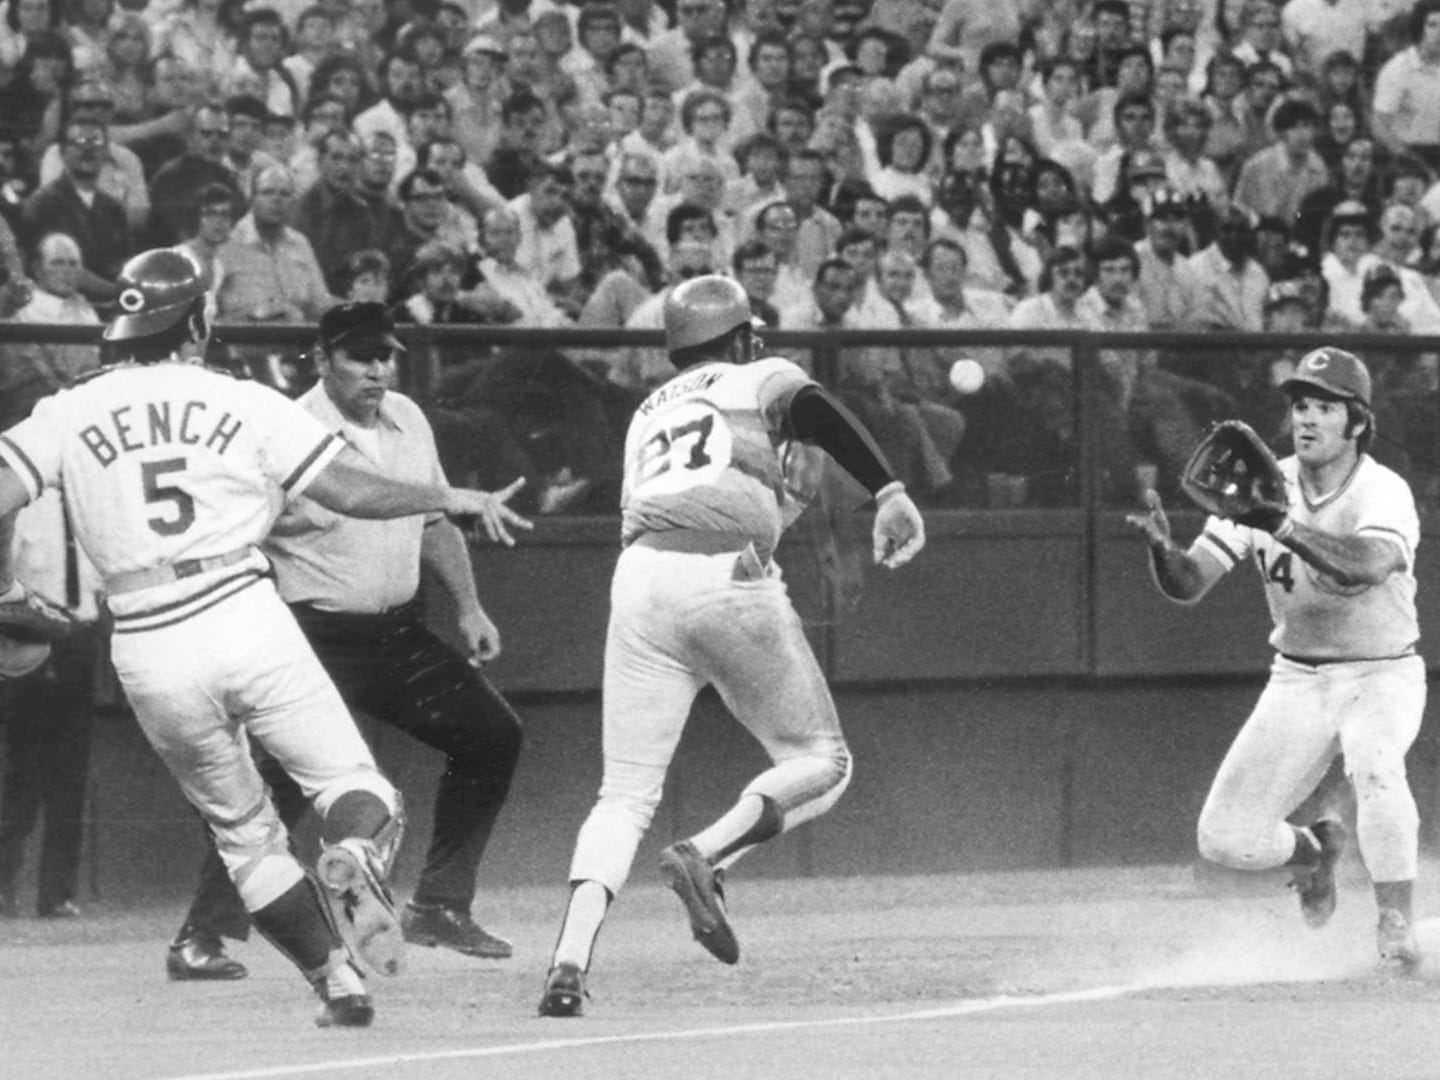 Bob Watson of the Houston Astros is trapped between Reds' catcher Johnny Bench and third baseman Pete Rose with Bench flipping the ball to Rose for the tag in the rundown during their July 1, 1975 game. The Enquirer/Mark Treitel